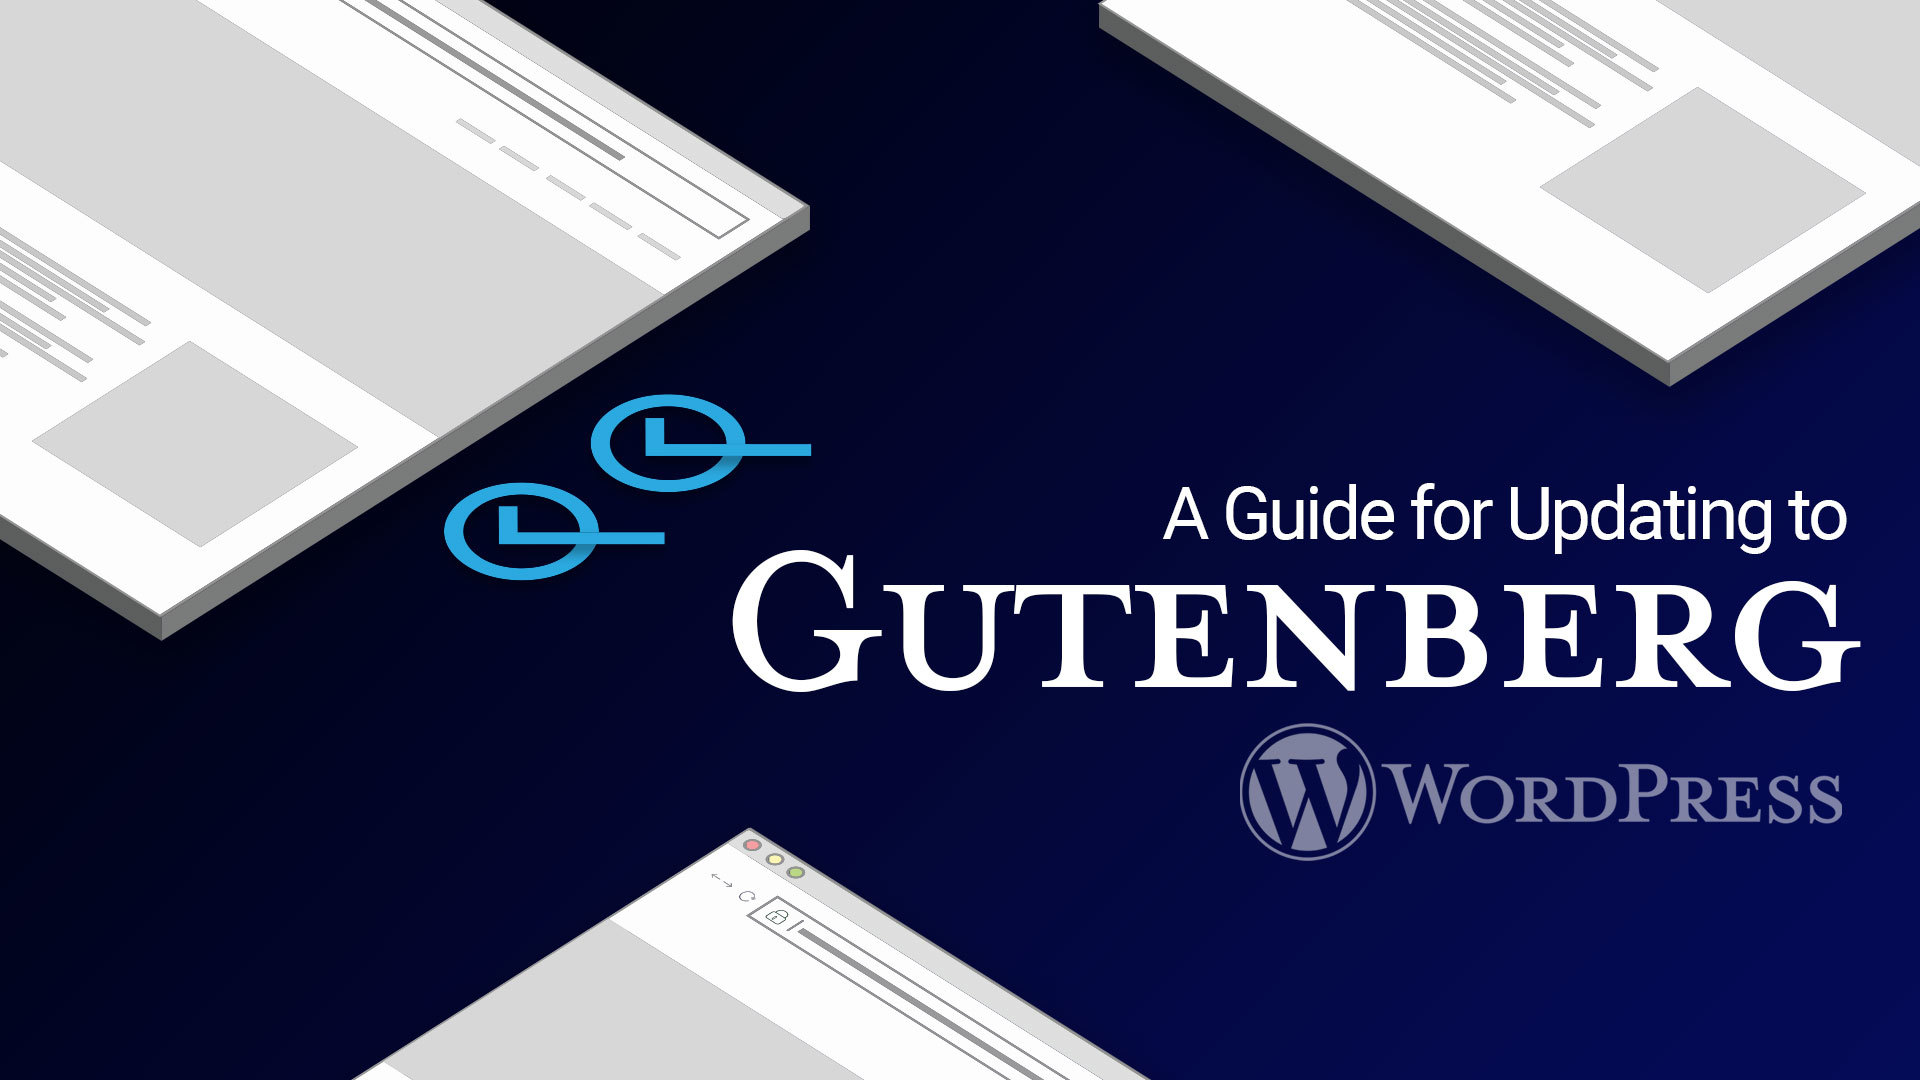 updating to gutenberg for wordpress